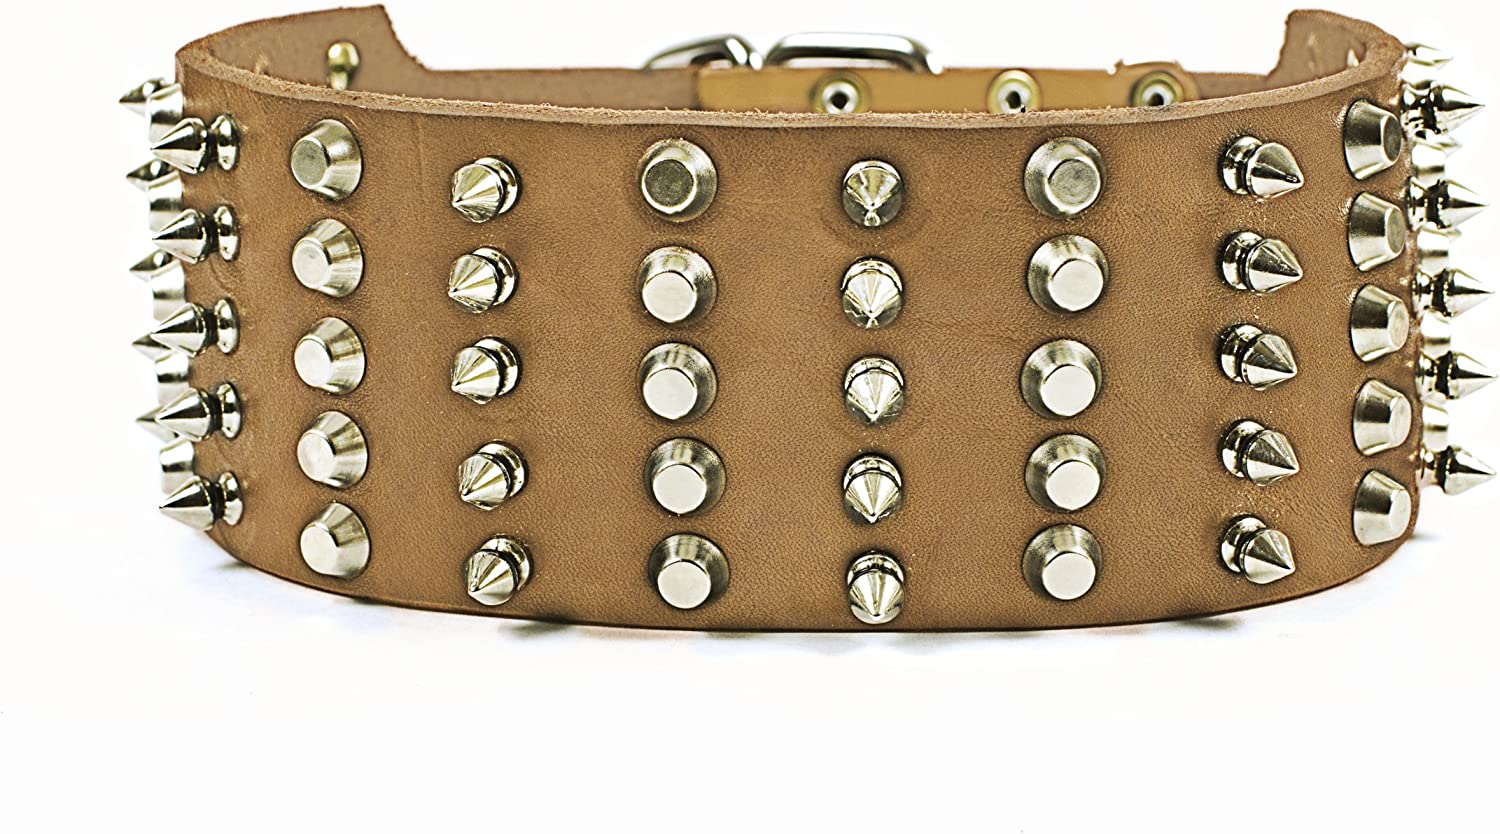 Dean and Tyler WIDE HEAVEN , Extra Wide Dog Collar with Nickel Spikes and Studs  Tan  Size 36Inch by 23 4Inch  Fits Neck 34Inch to 38Inch